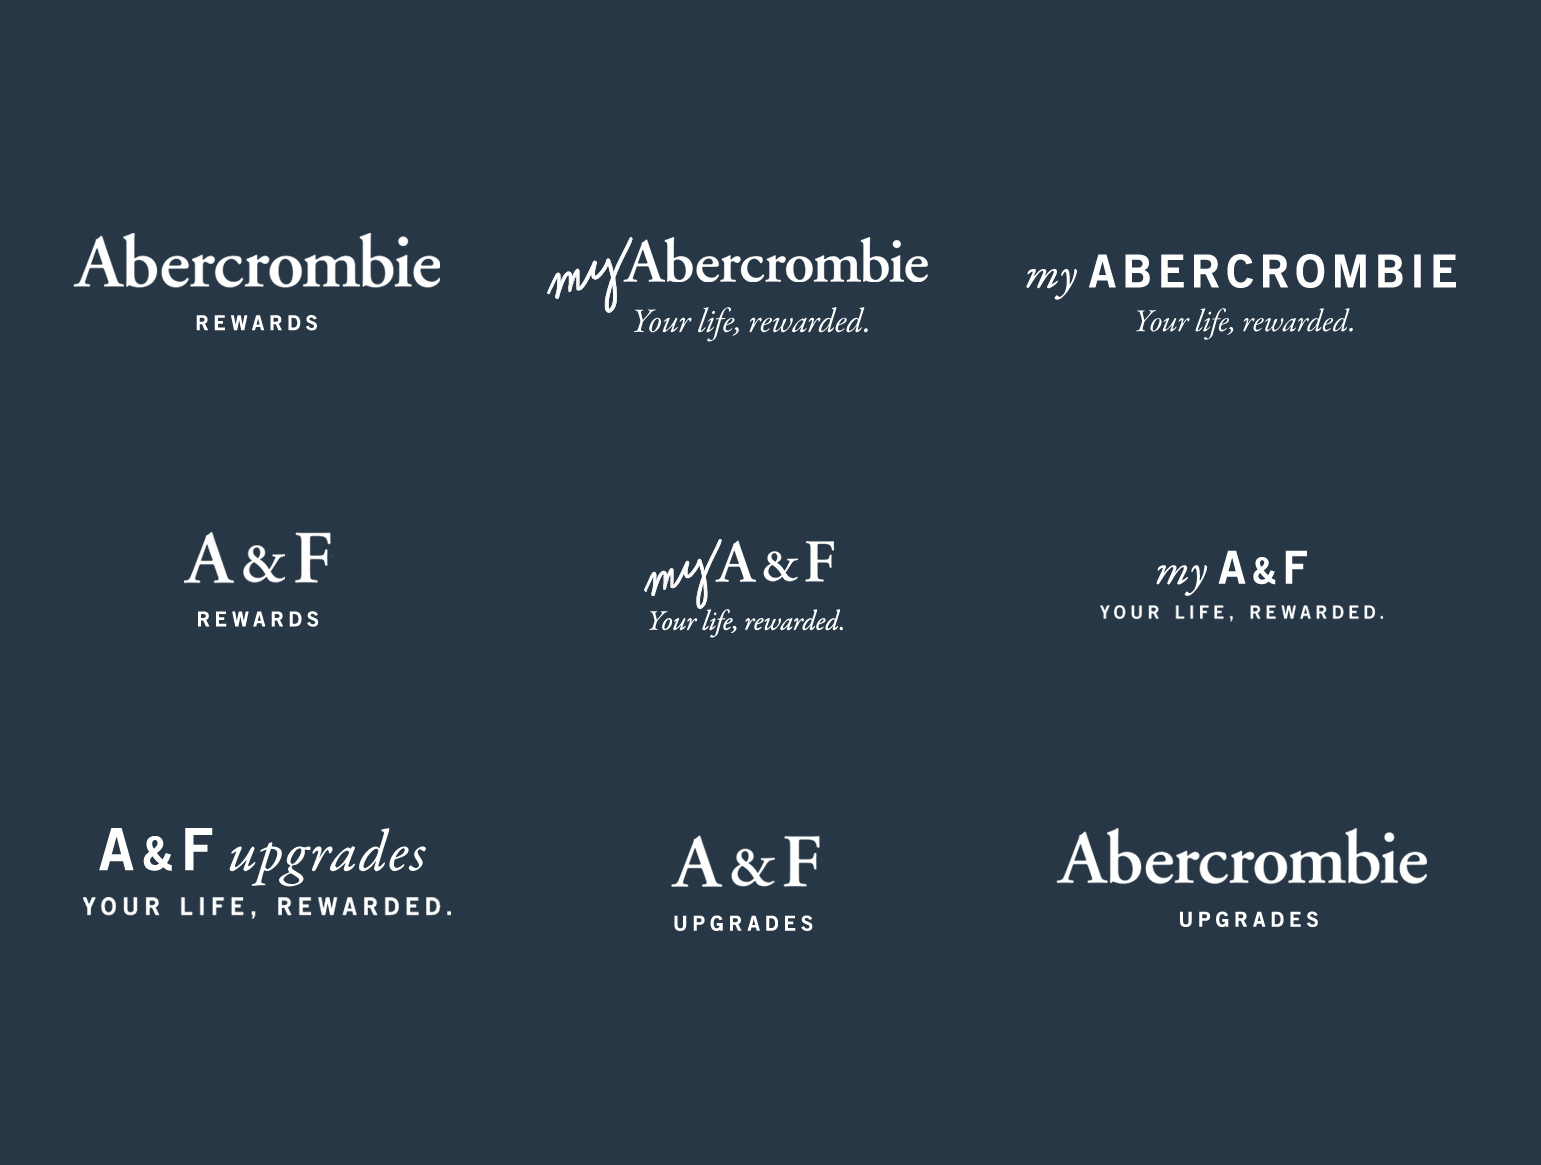 Kara Smarsh — Art Direction + Design Abercrombie Brand Refresh